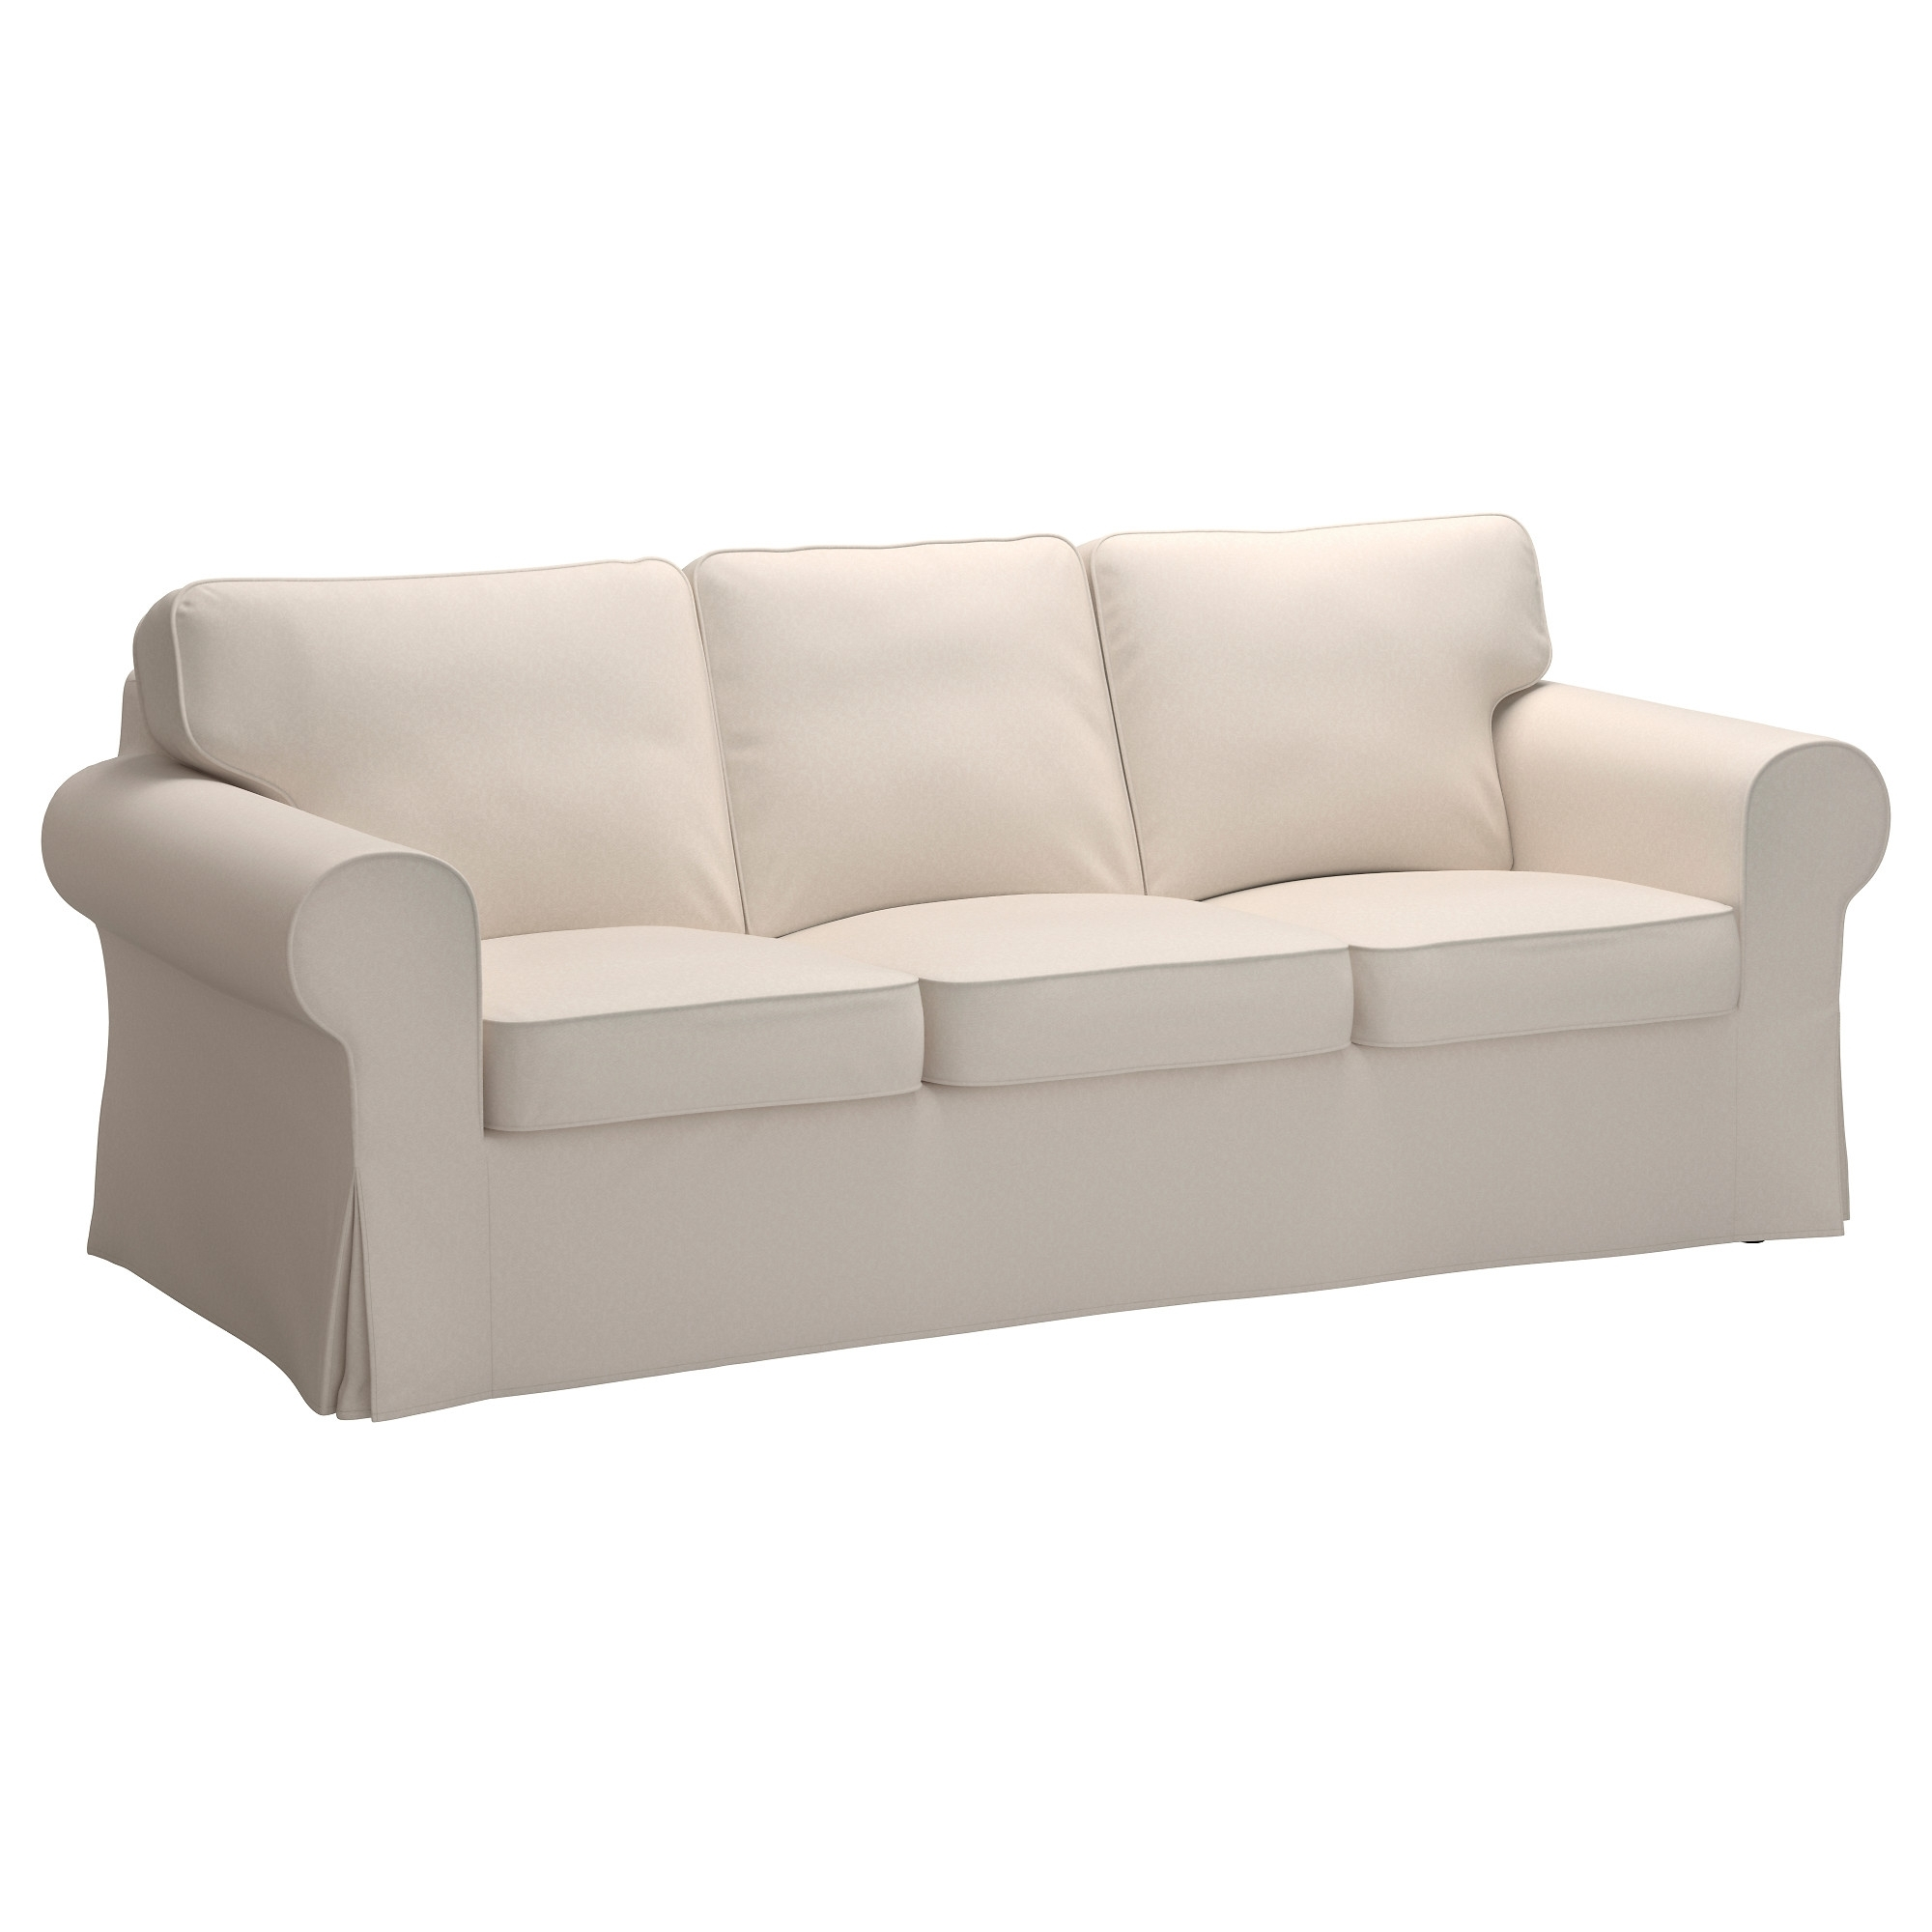 Favorite Ikea Small Sofas Inside Ektorp Three Seat Sofa – Lofallet Beige – Ikea (View 6 of 15)